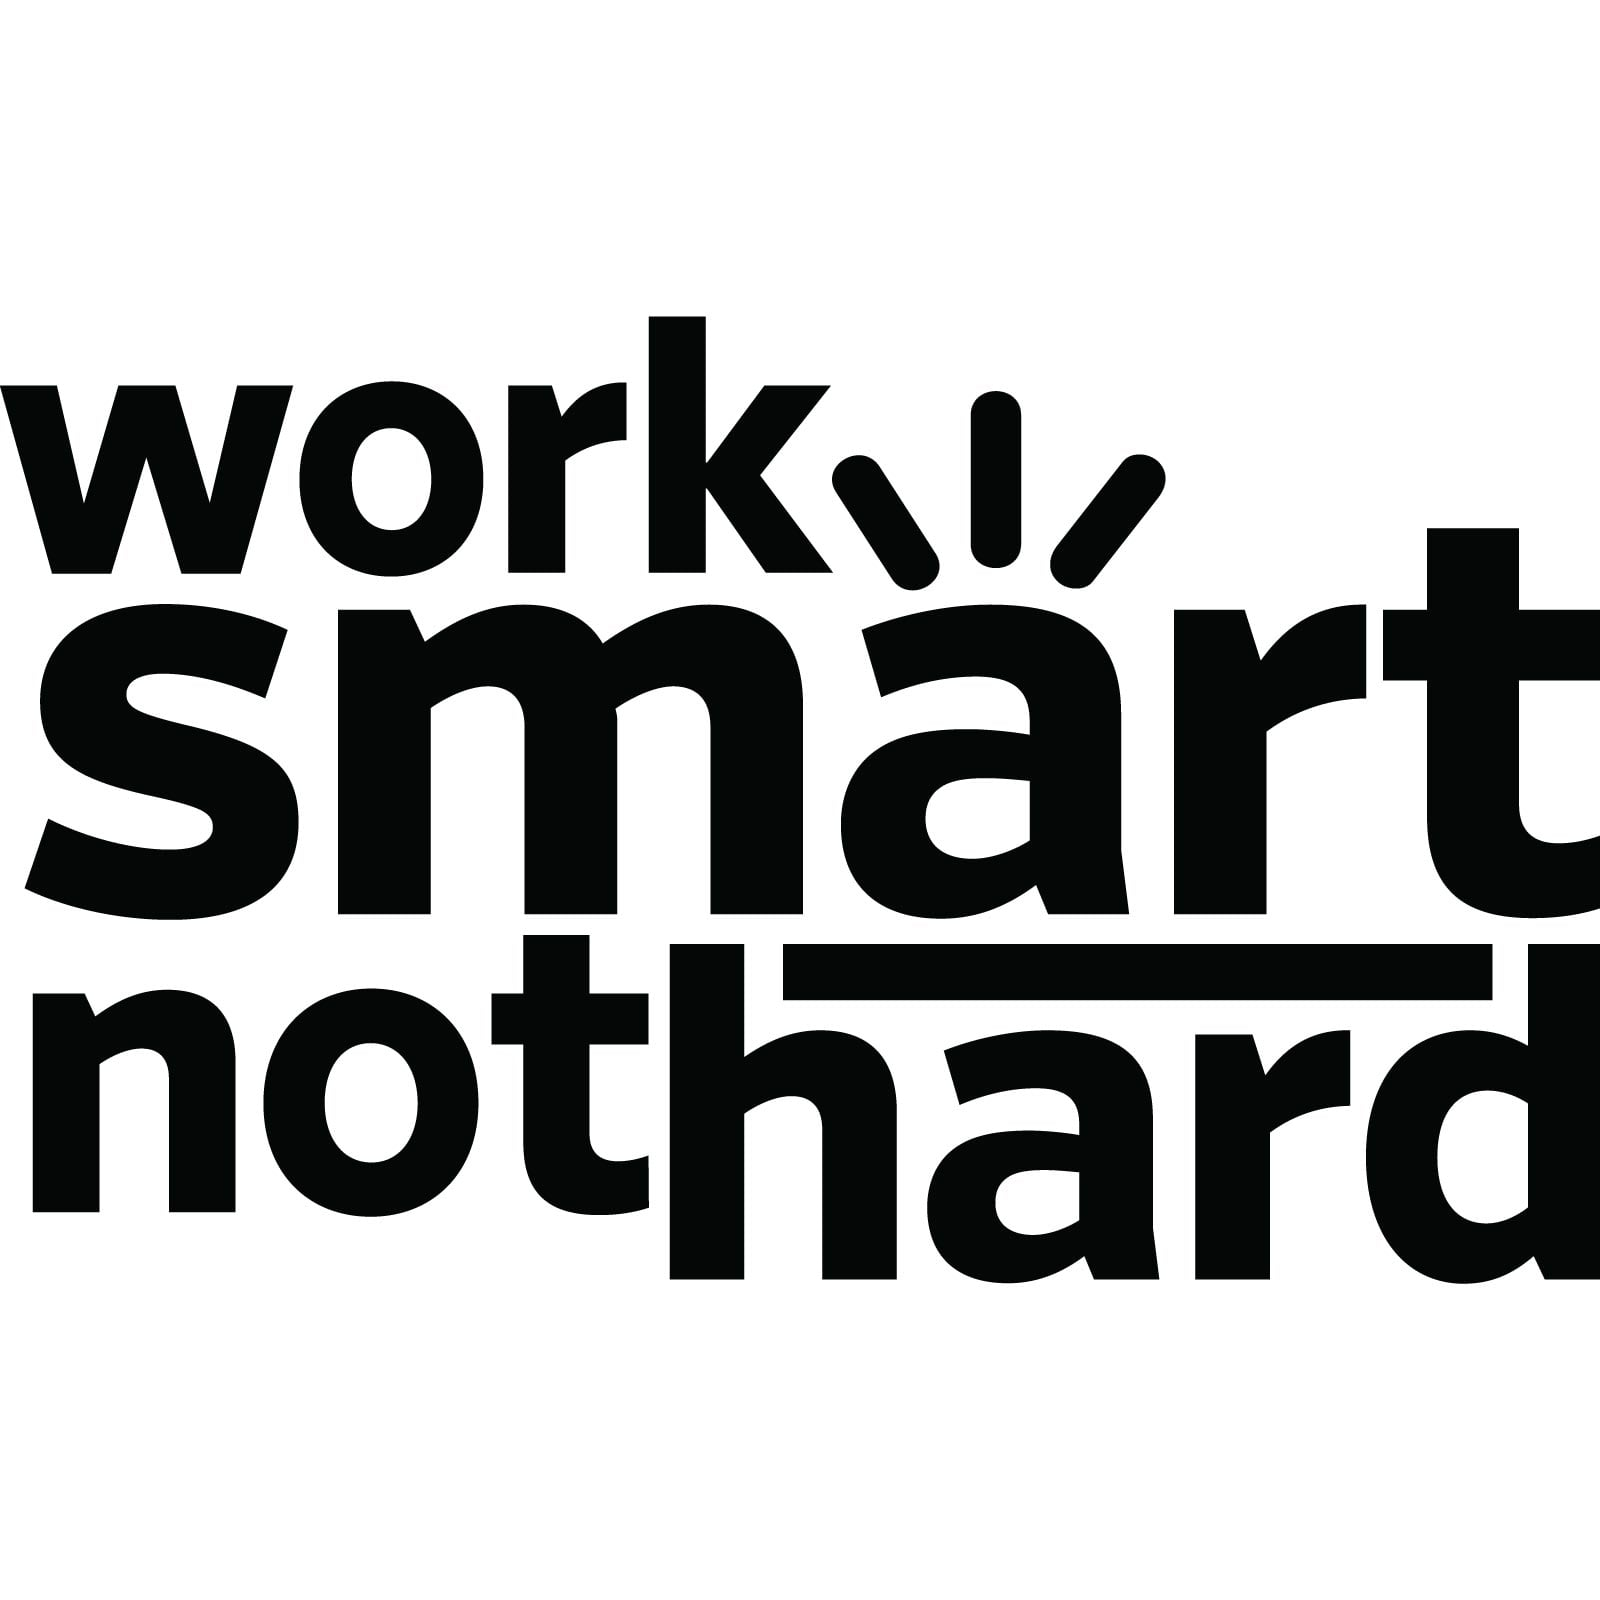 Bildresultat för work smart not hard